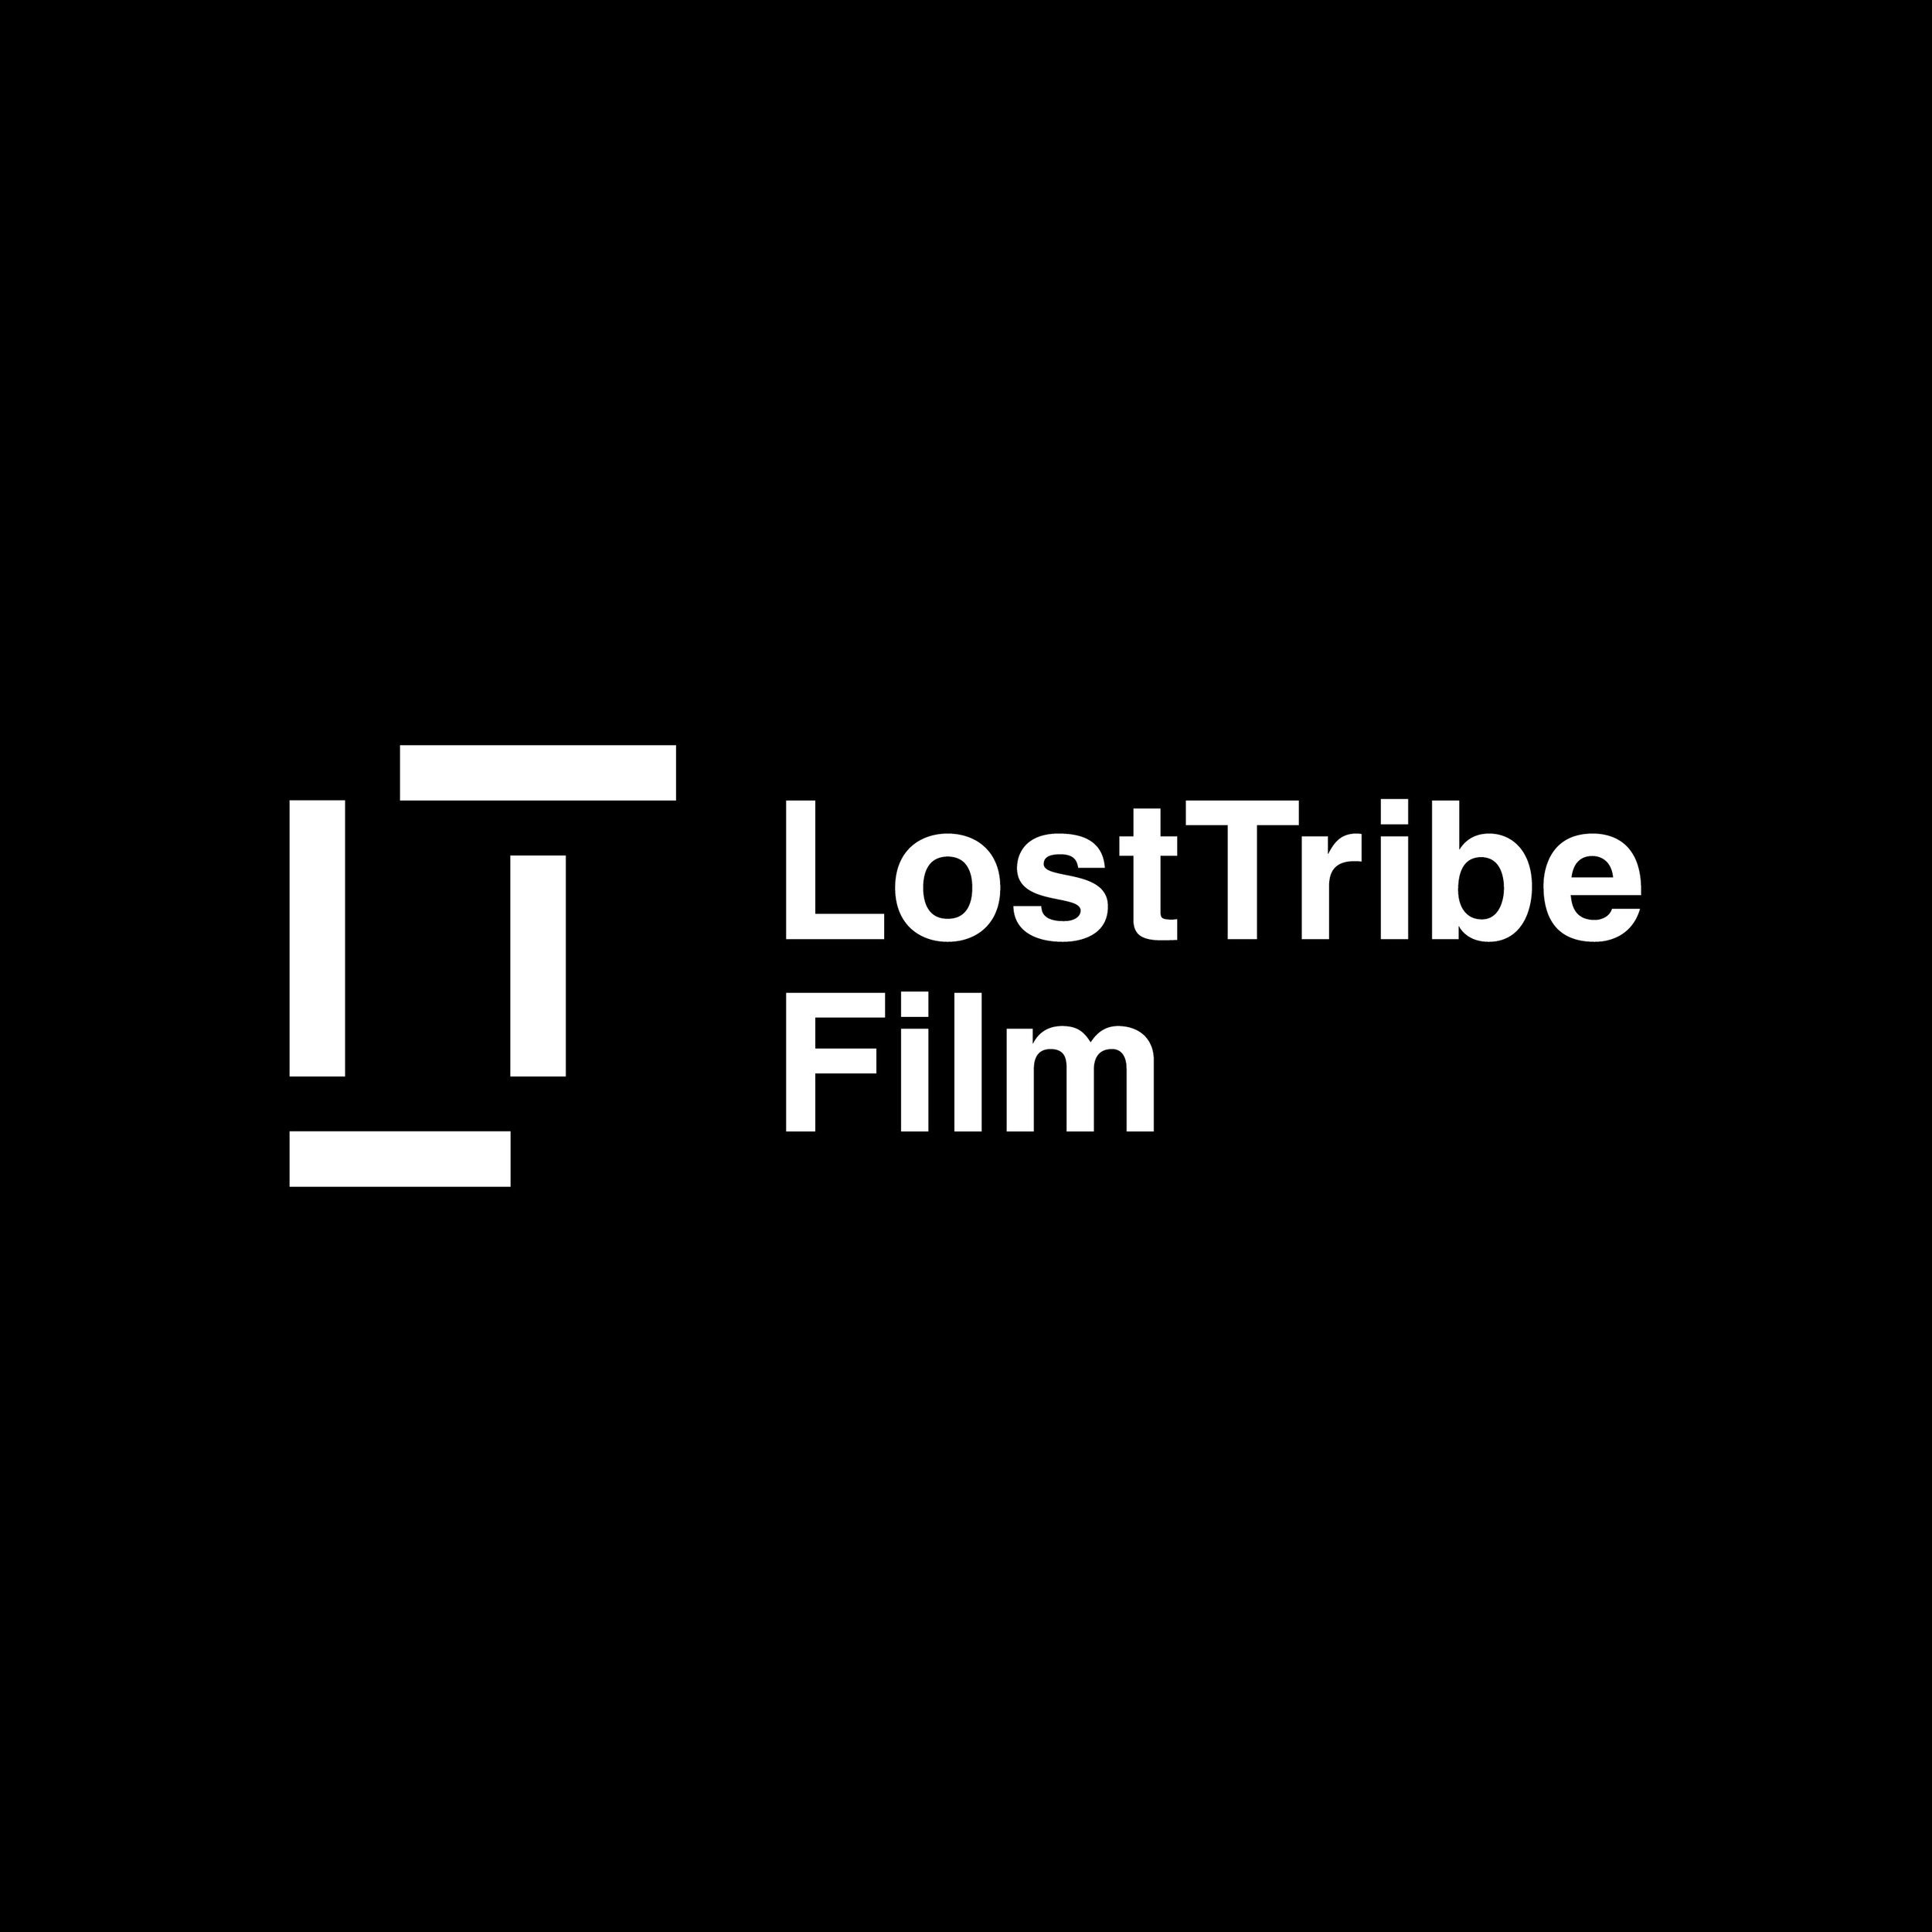 LostTribe_Film_1.jpg